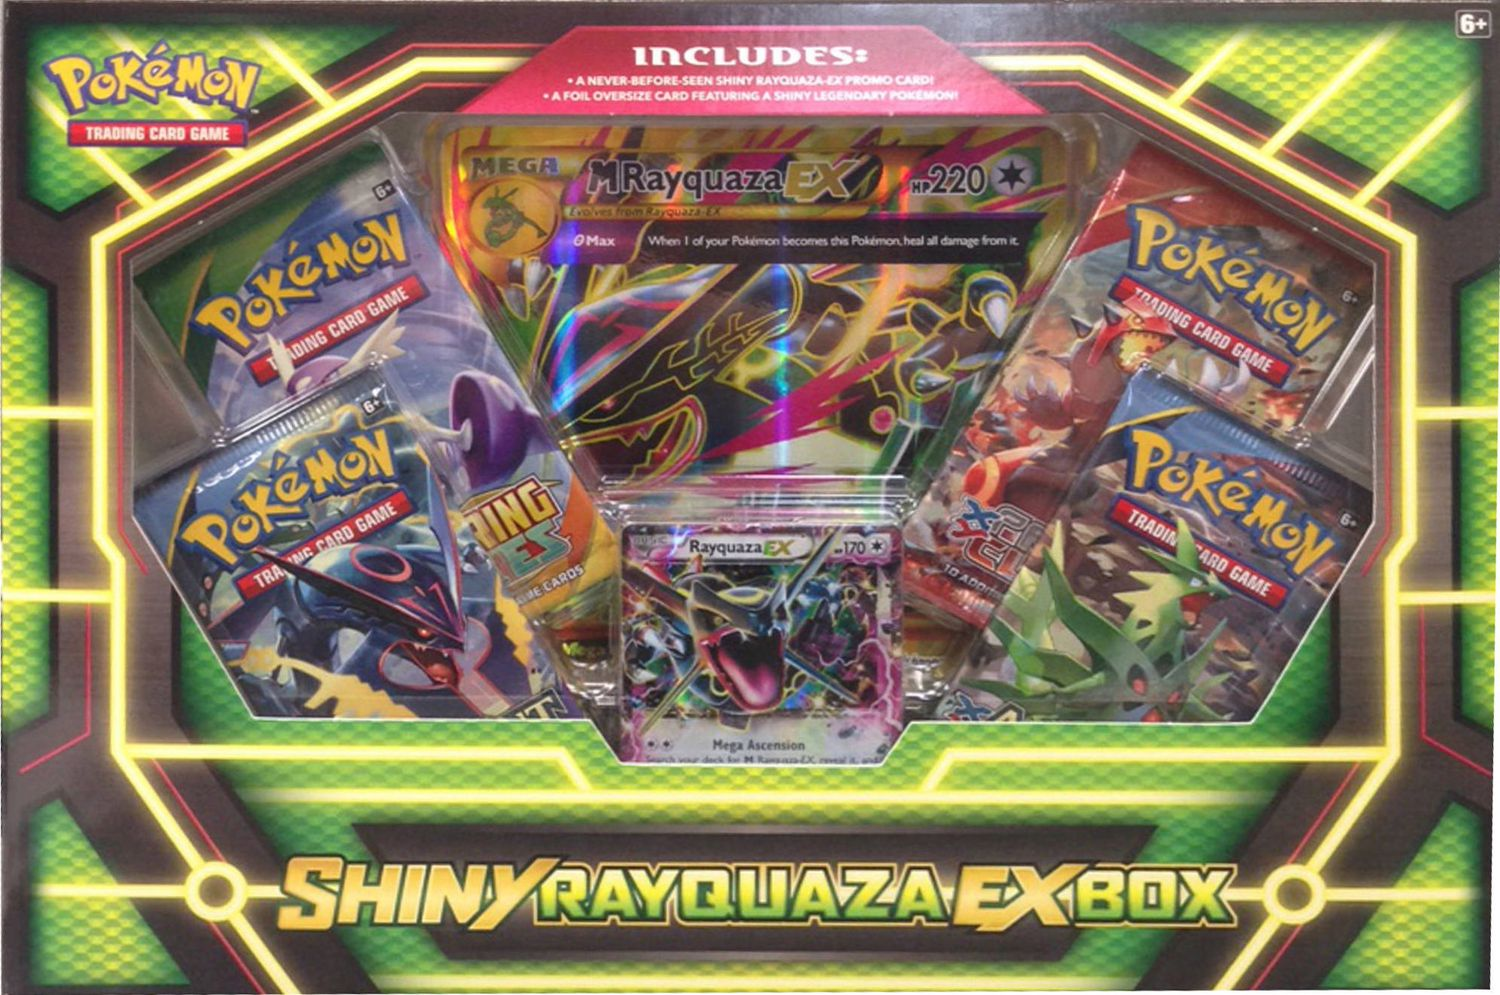 LOT OF 2 X POKEMON ONLINE CODE CARD FROM THE SHINY RAYQUAZA EX BOX